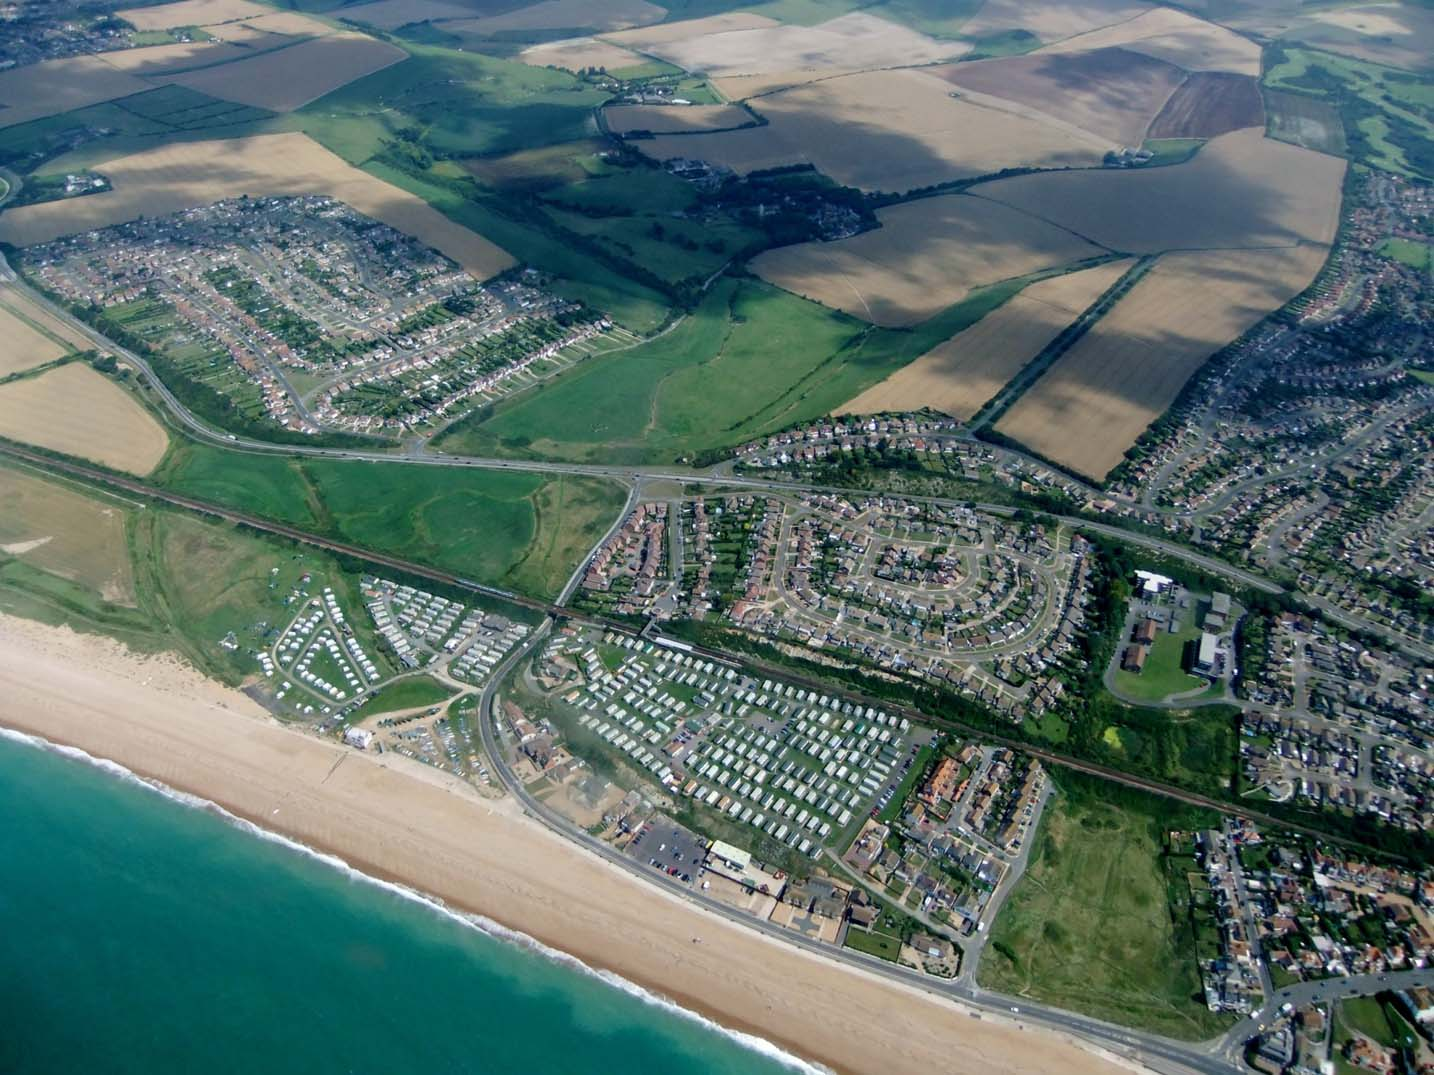 Seaford from above East Sussex